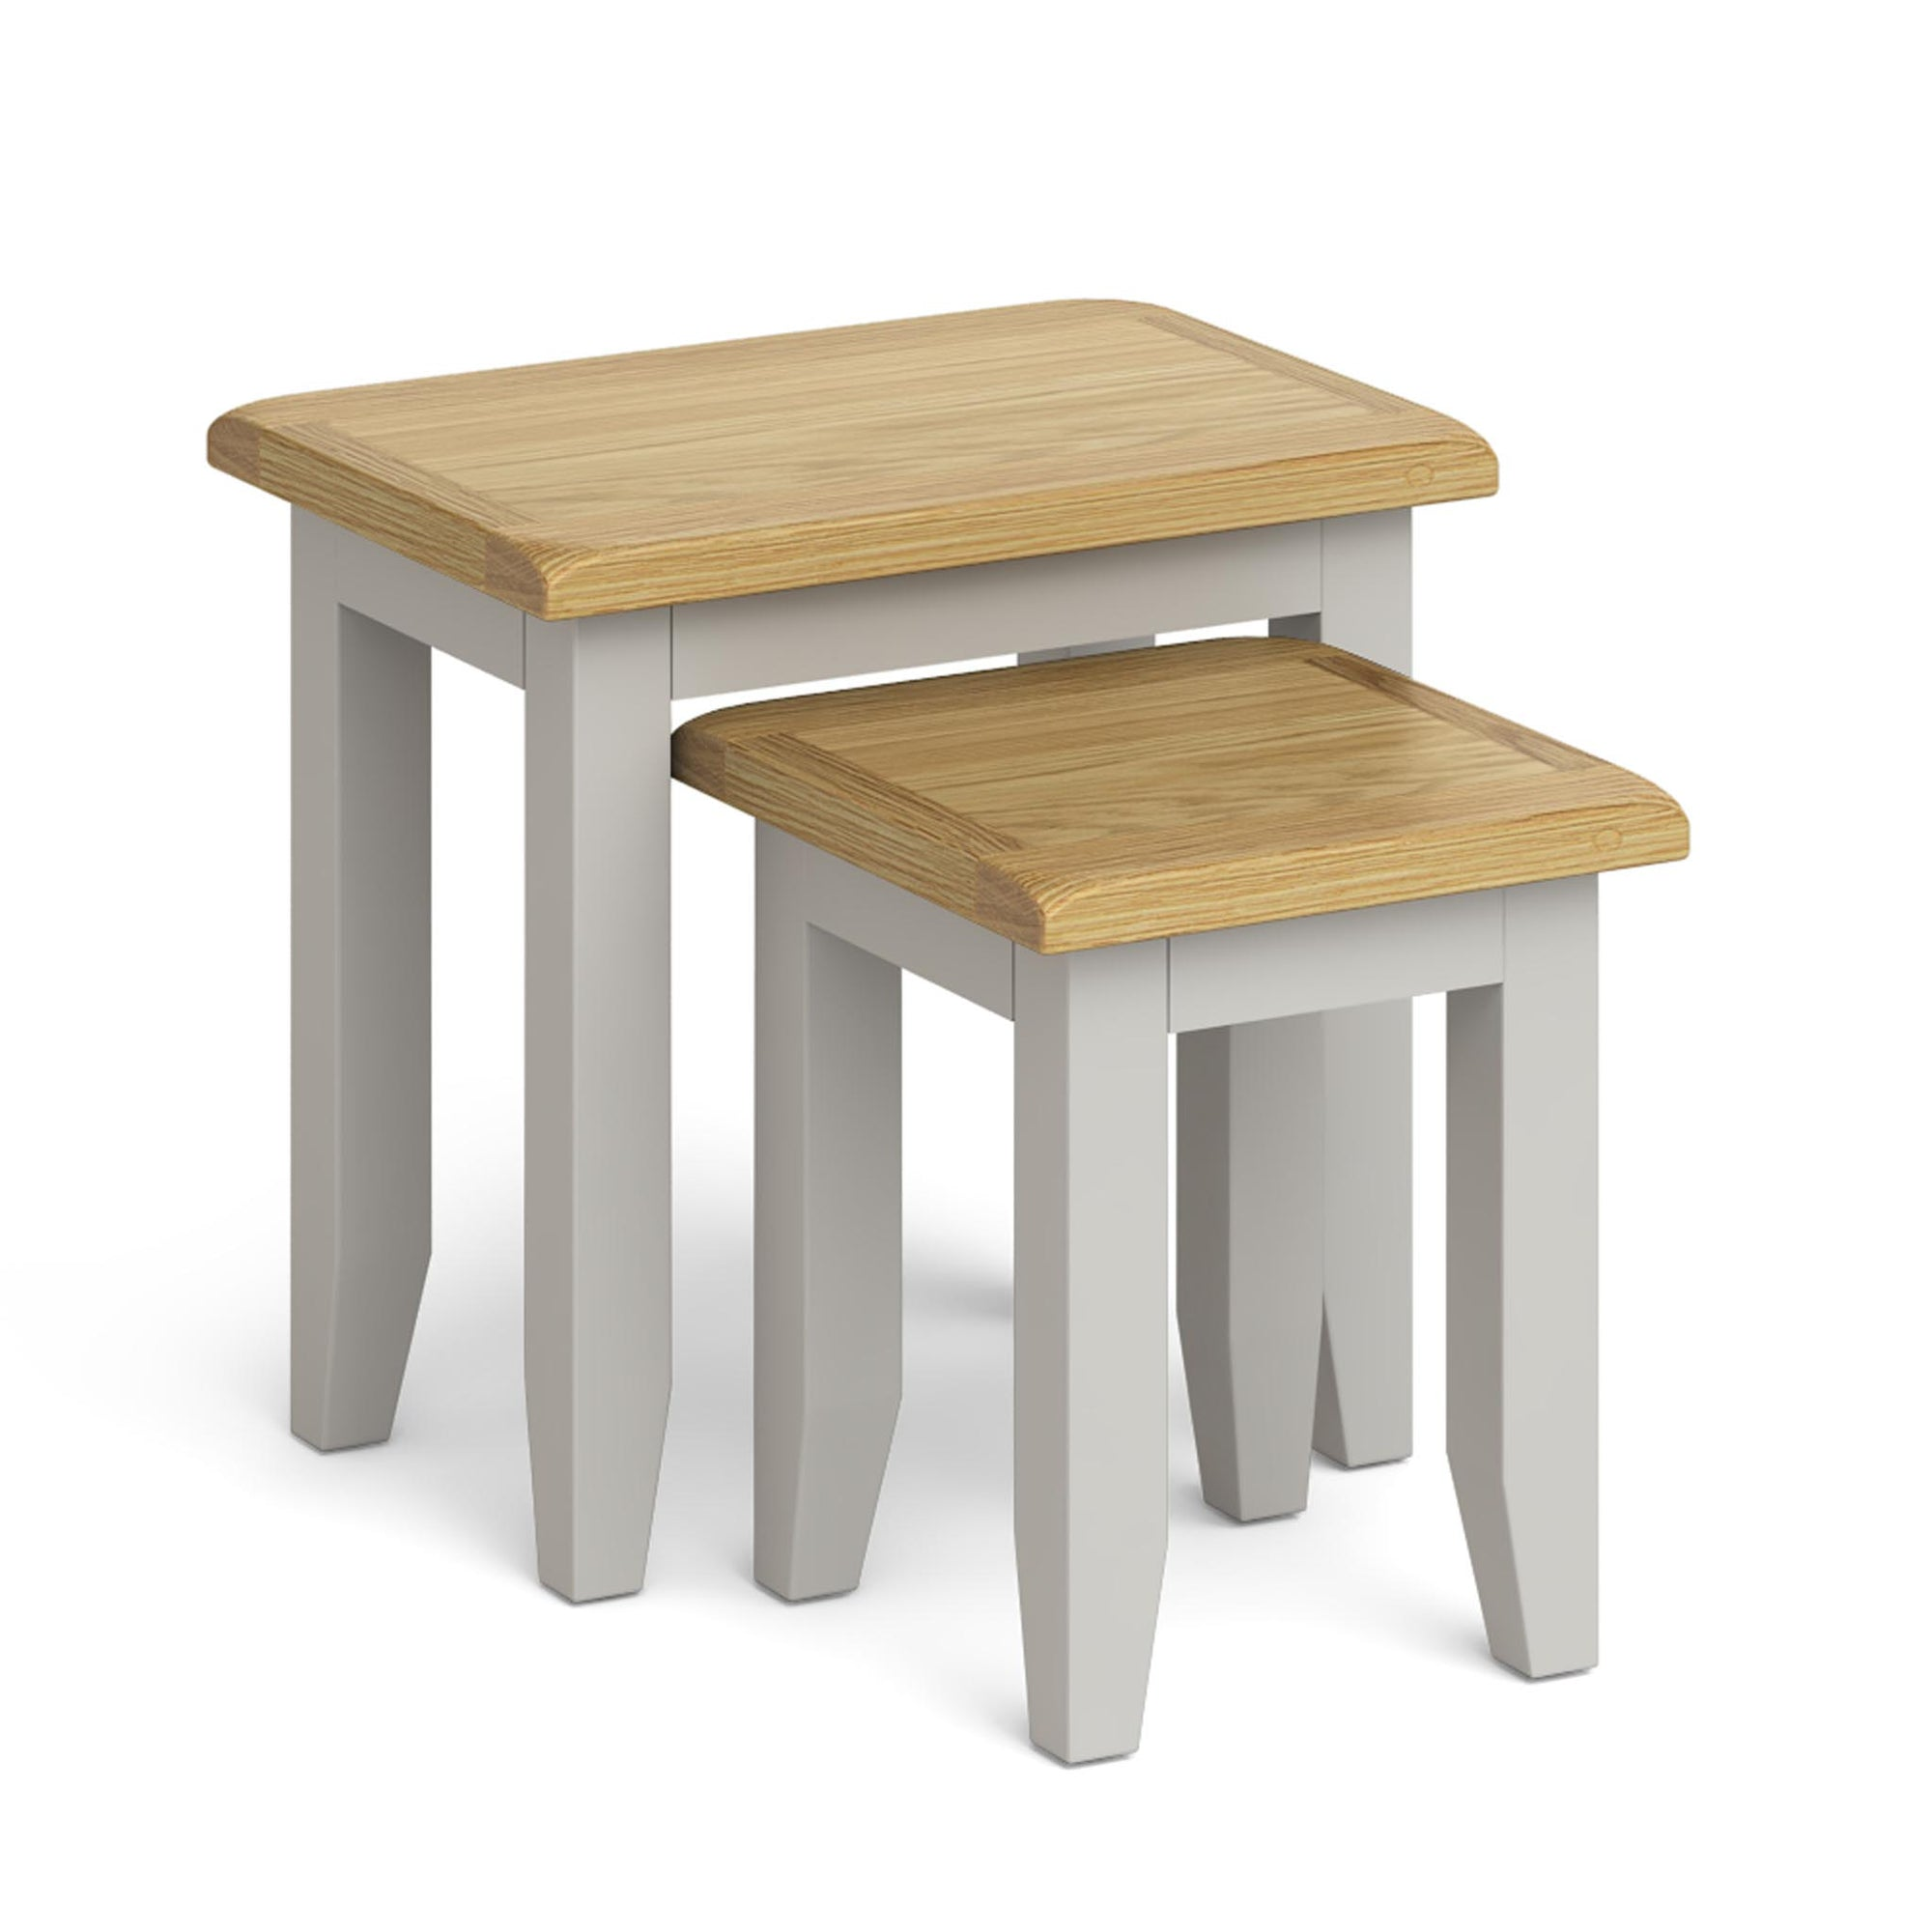 Lundy Grey Nest of Tables by Roseland Furniture